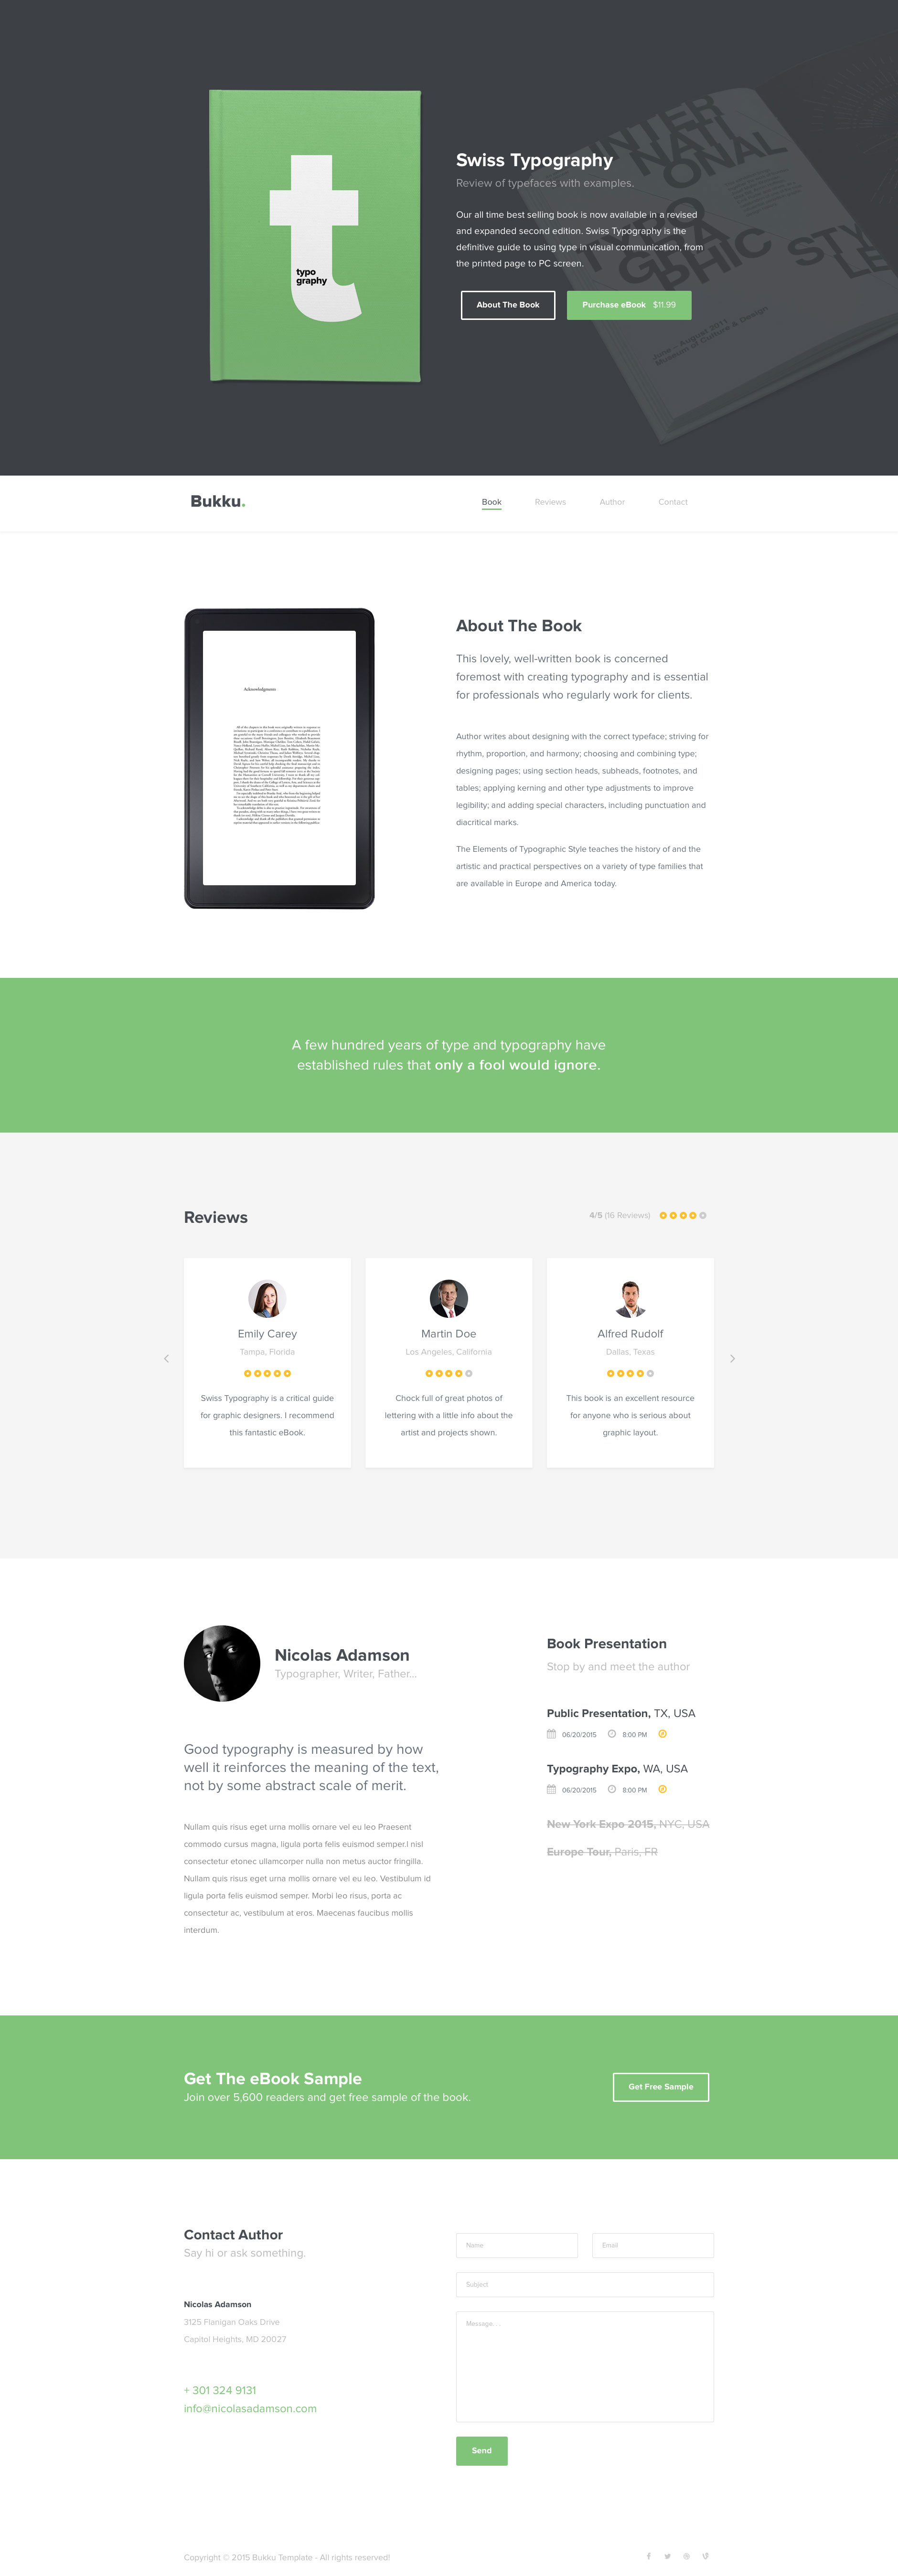 Bukku is a free professional responsive e-book template, it's fully responsive, built with HTML5 and CSS3 and looks stunning on any device. Bukku template uses the popular Bootstrap 3 framework.